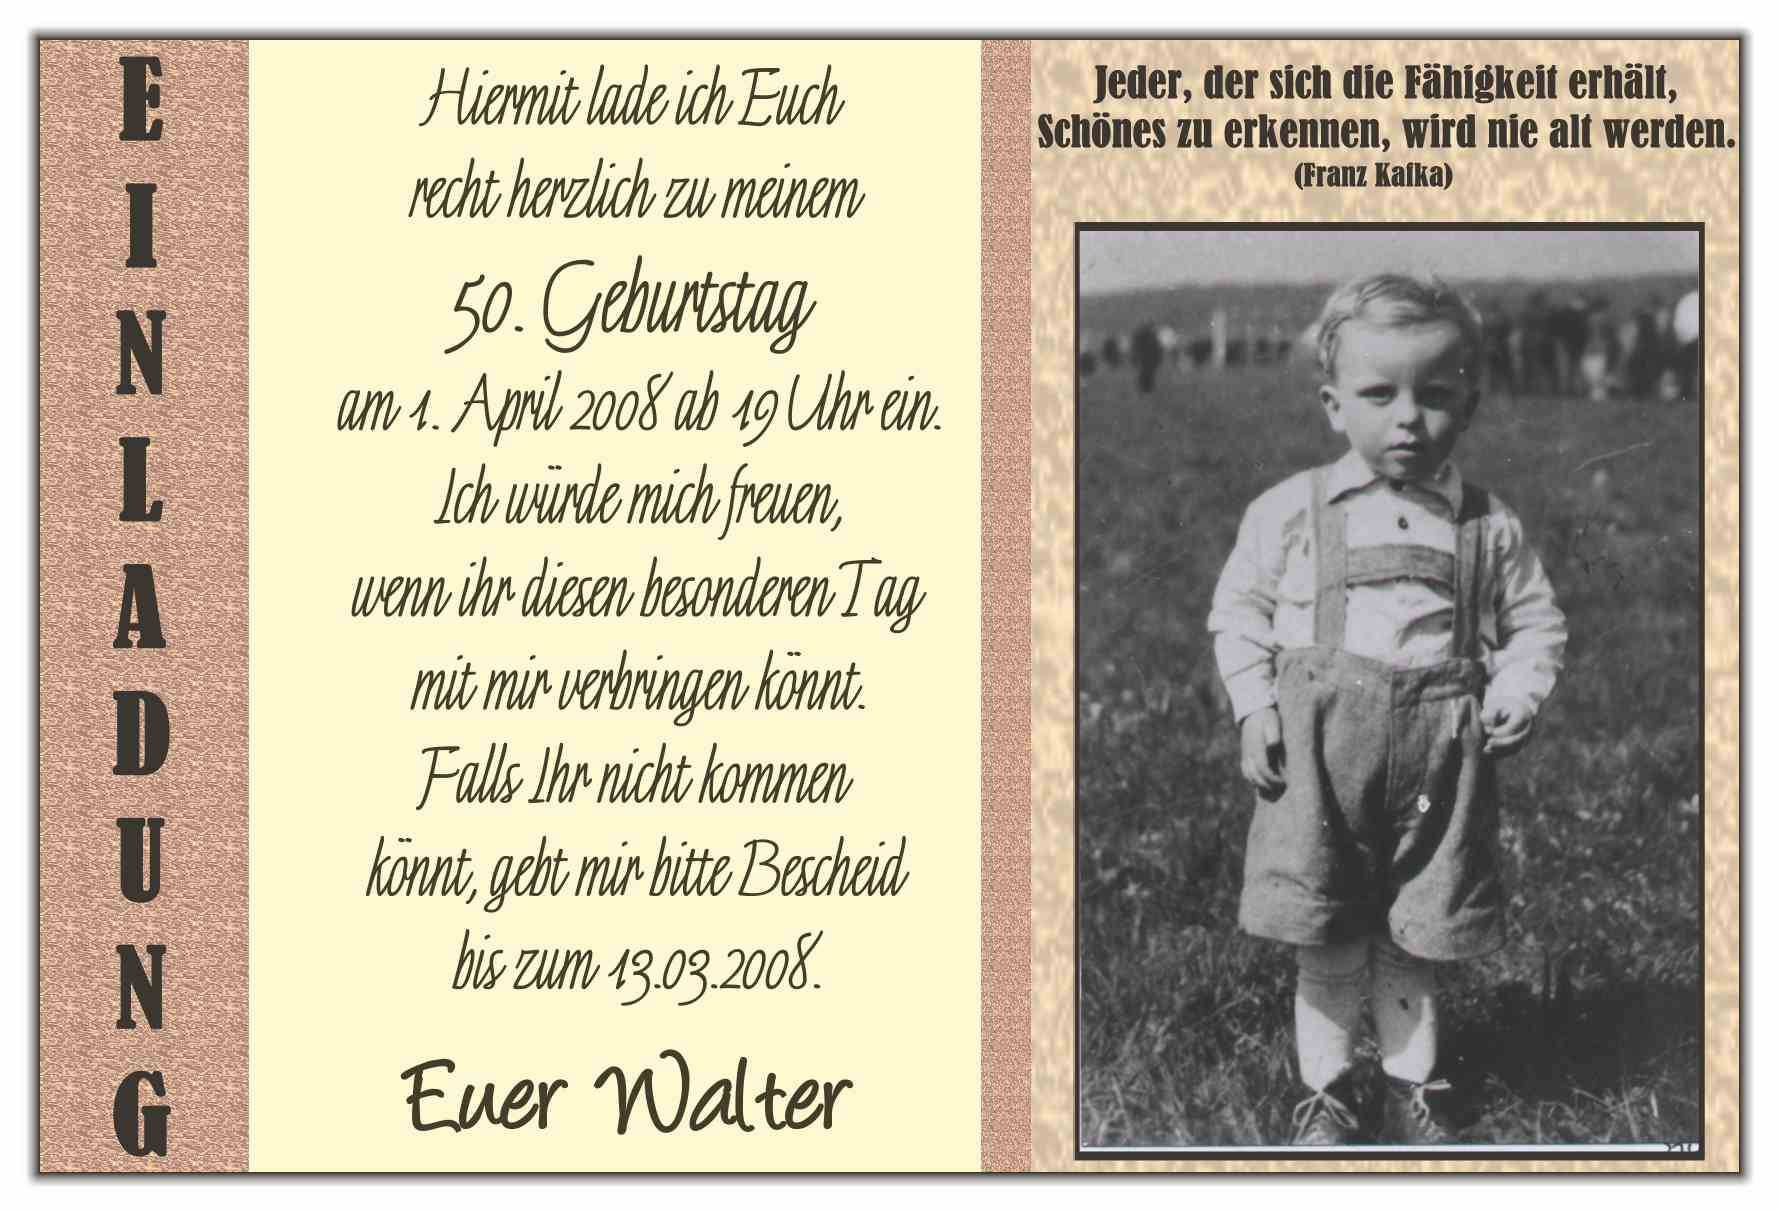 More Article From 50 Geburtstag Einladung